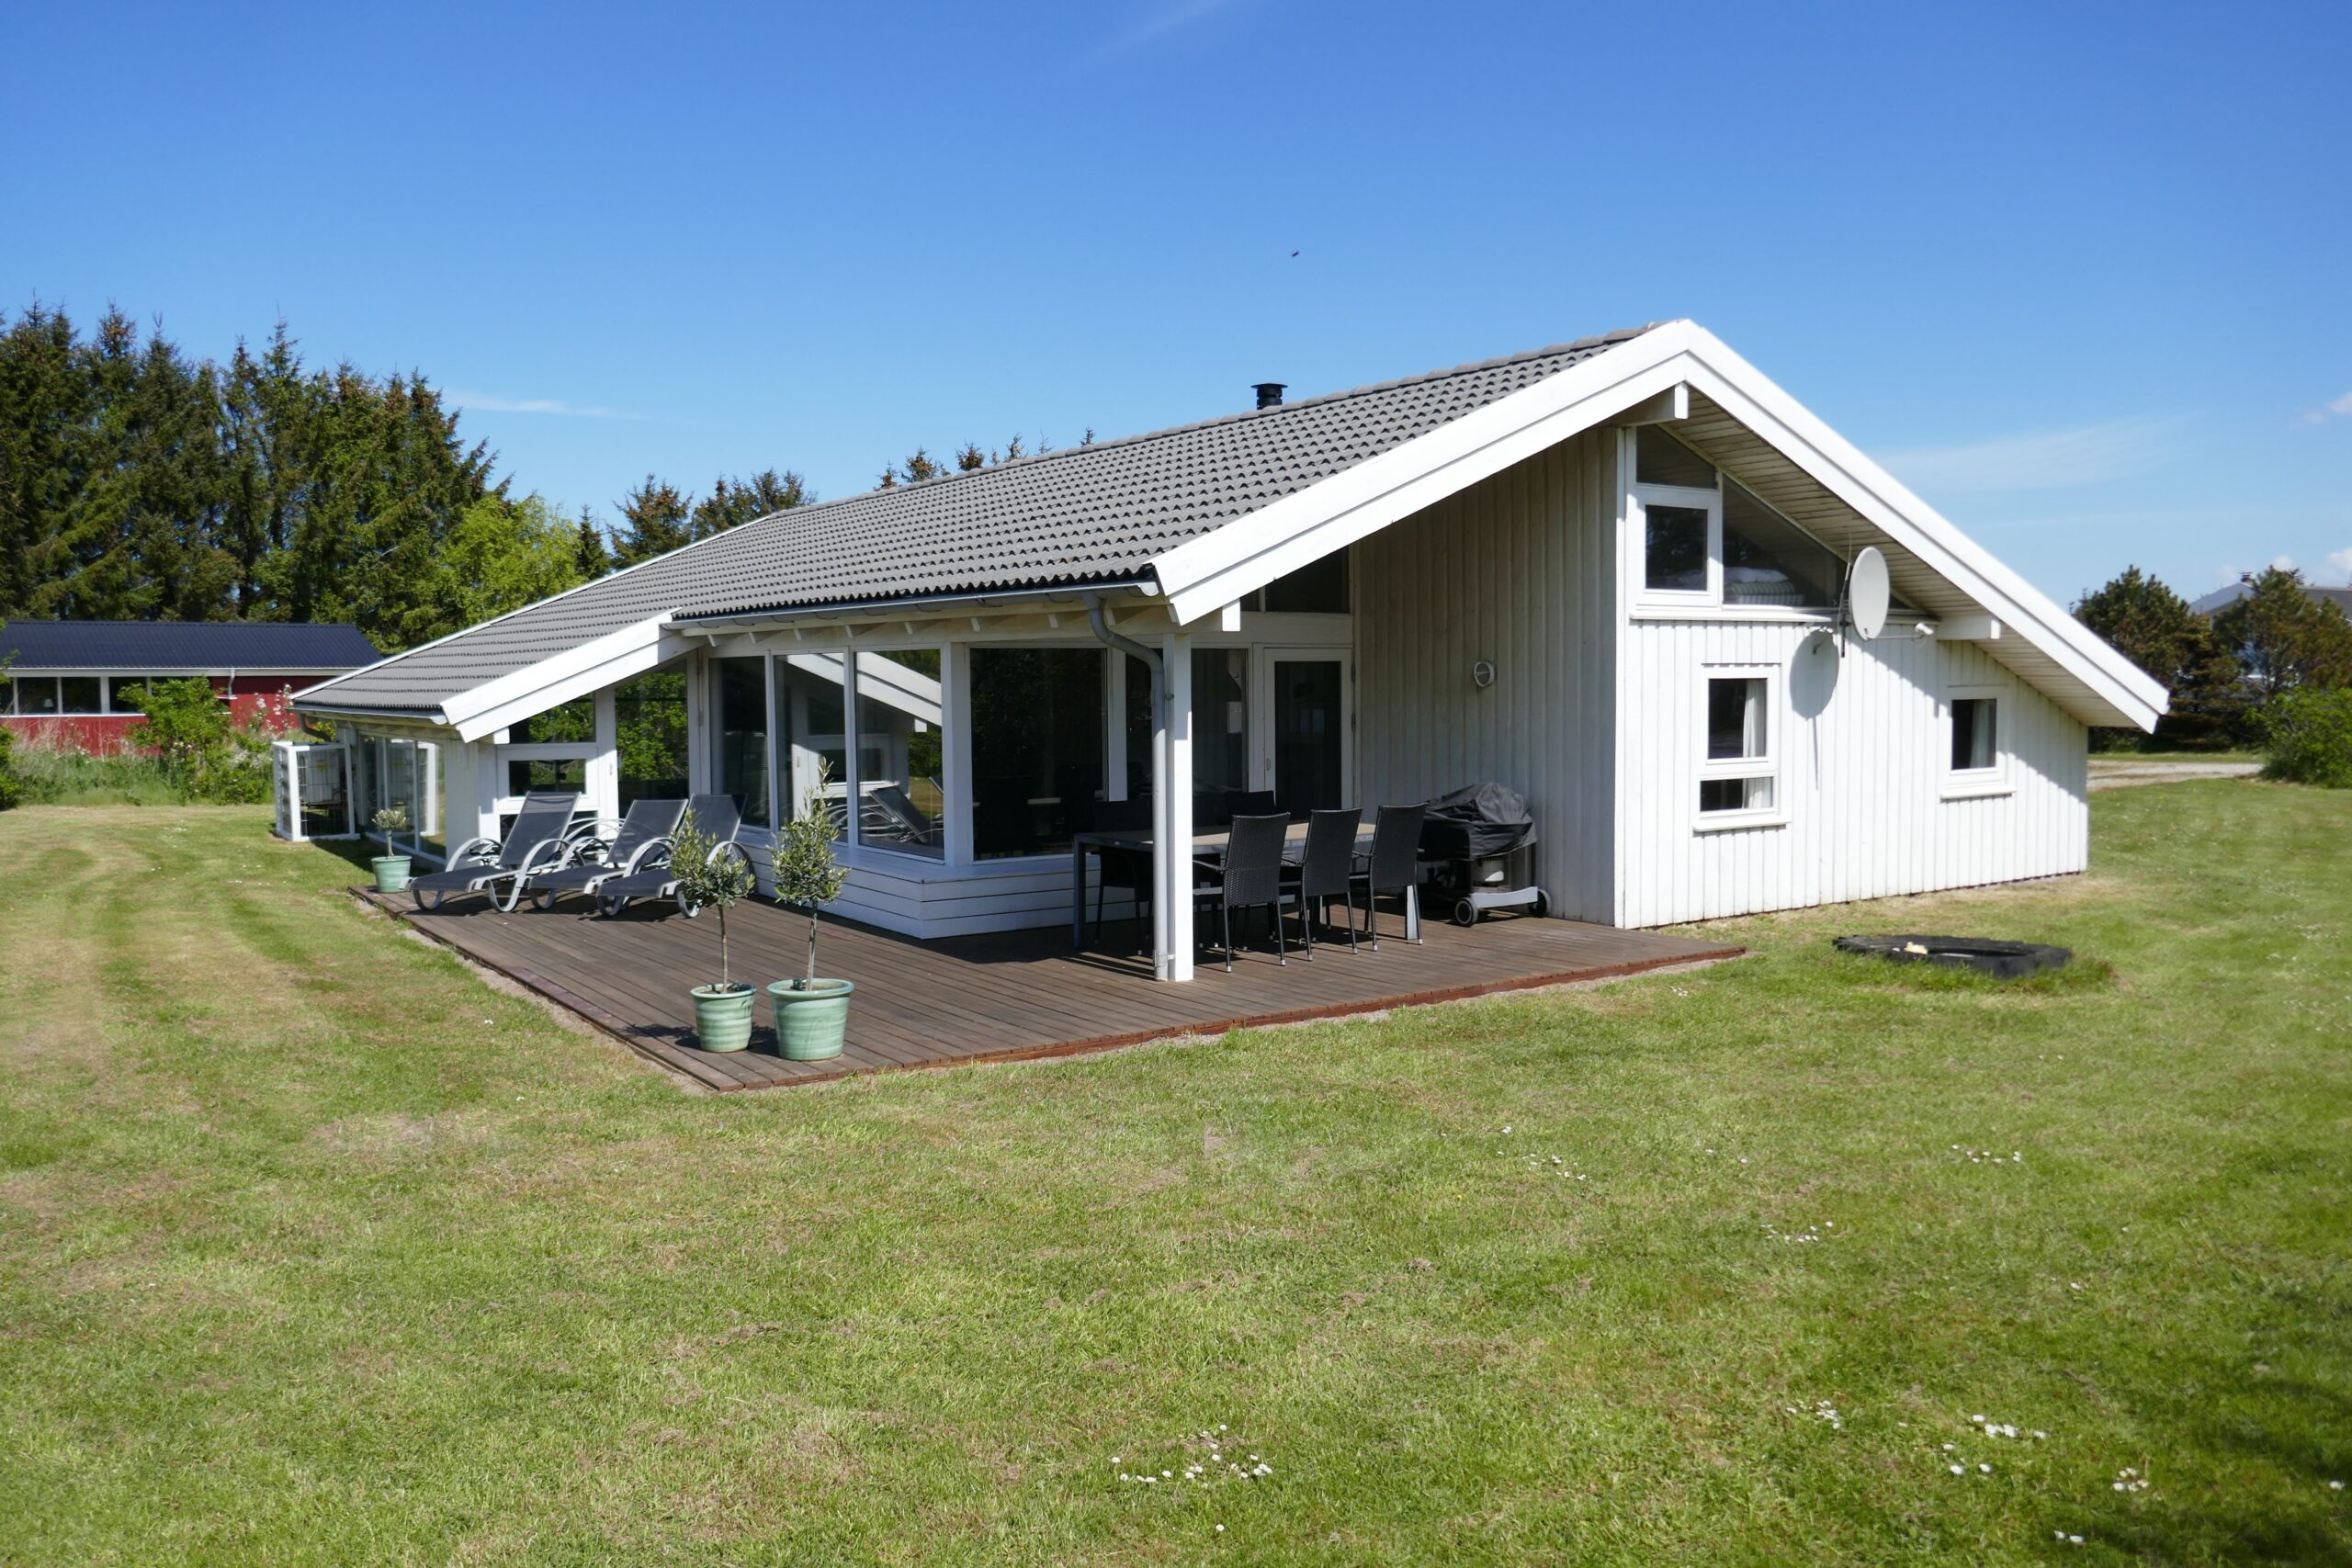 Poolhus fra haven